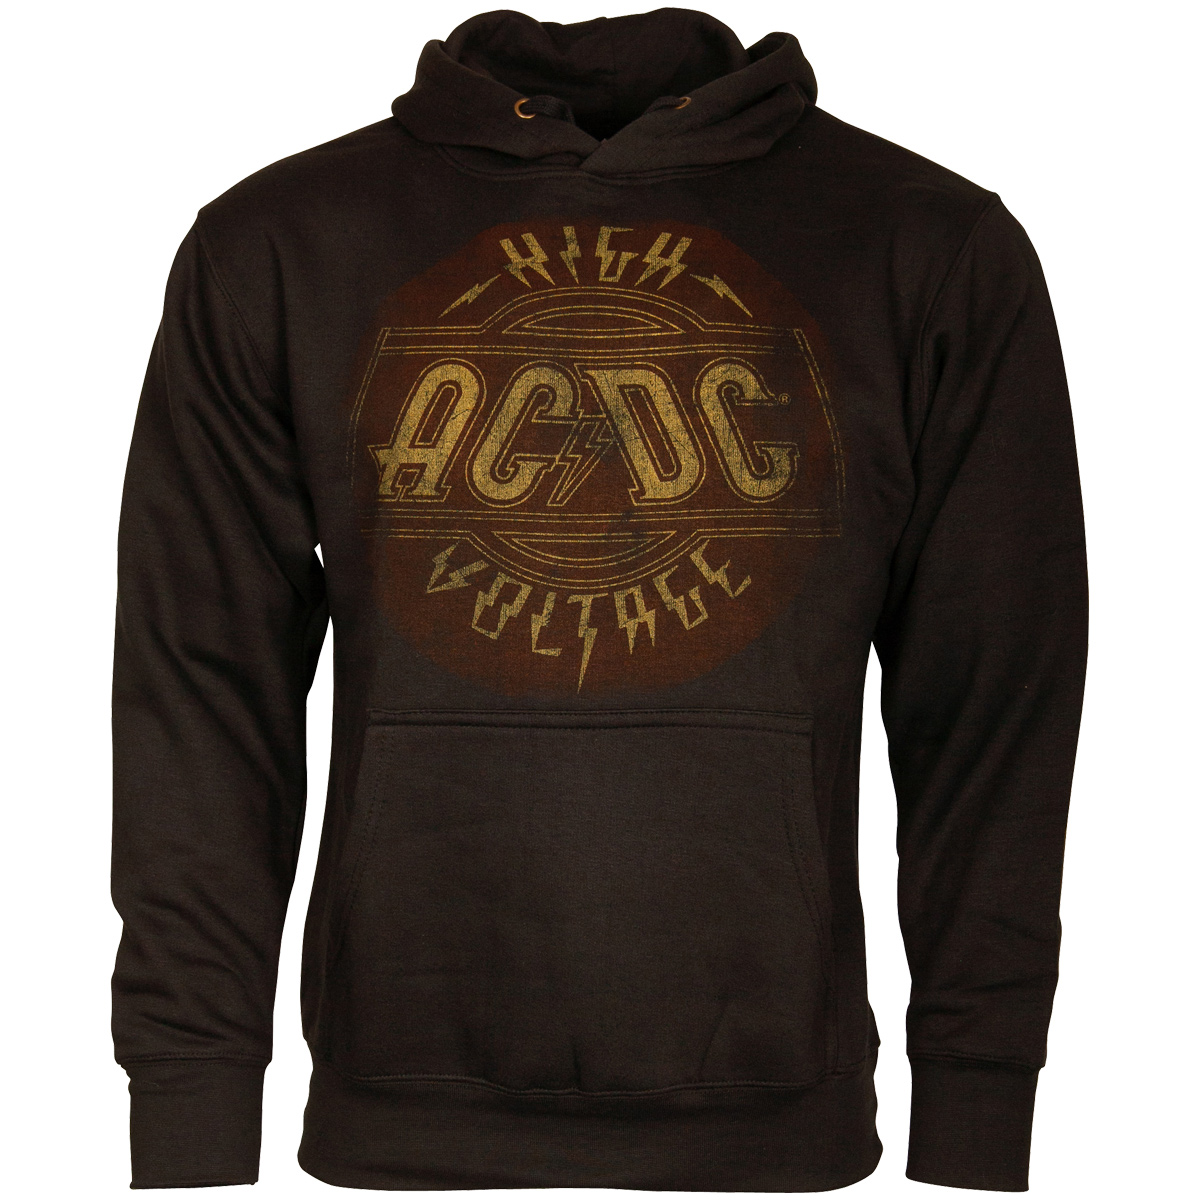 AC/DC - Kapuzenpullover High Voltage - schwarz